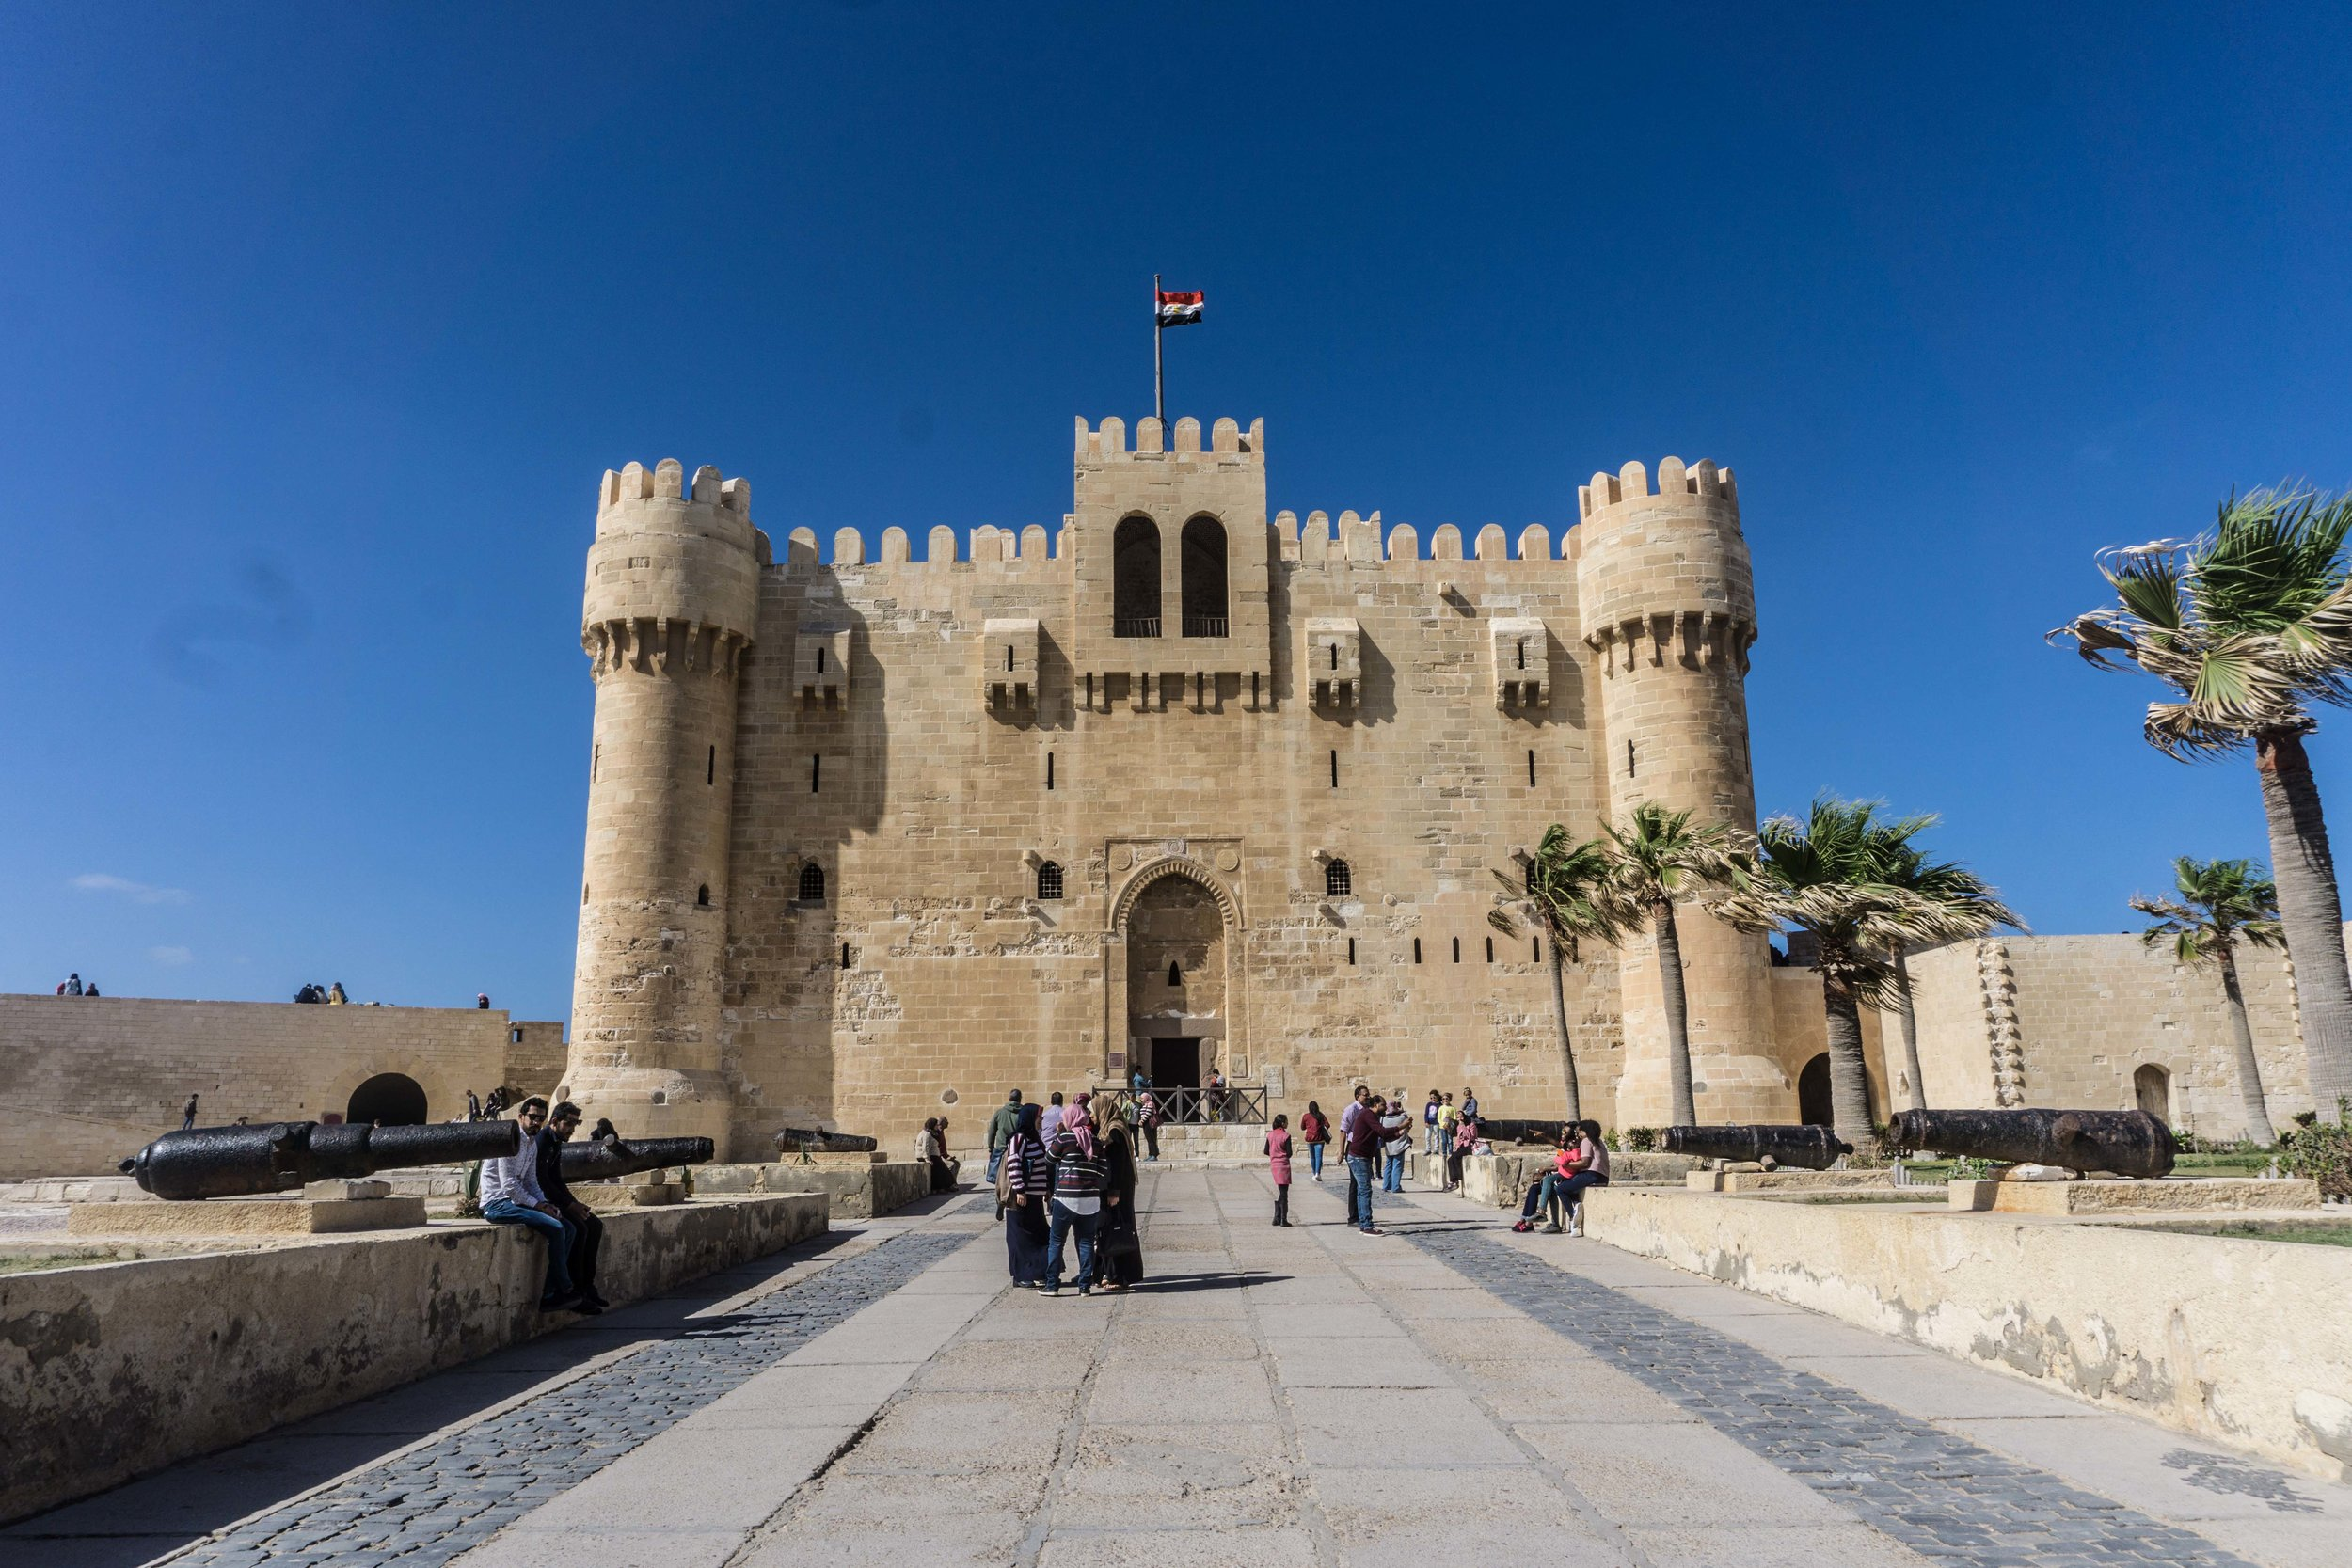 Citadel of Qaitbay - built on the foundations of the Lightout of Alexandria